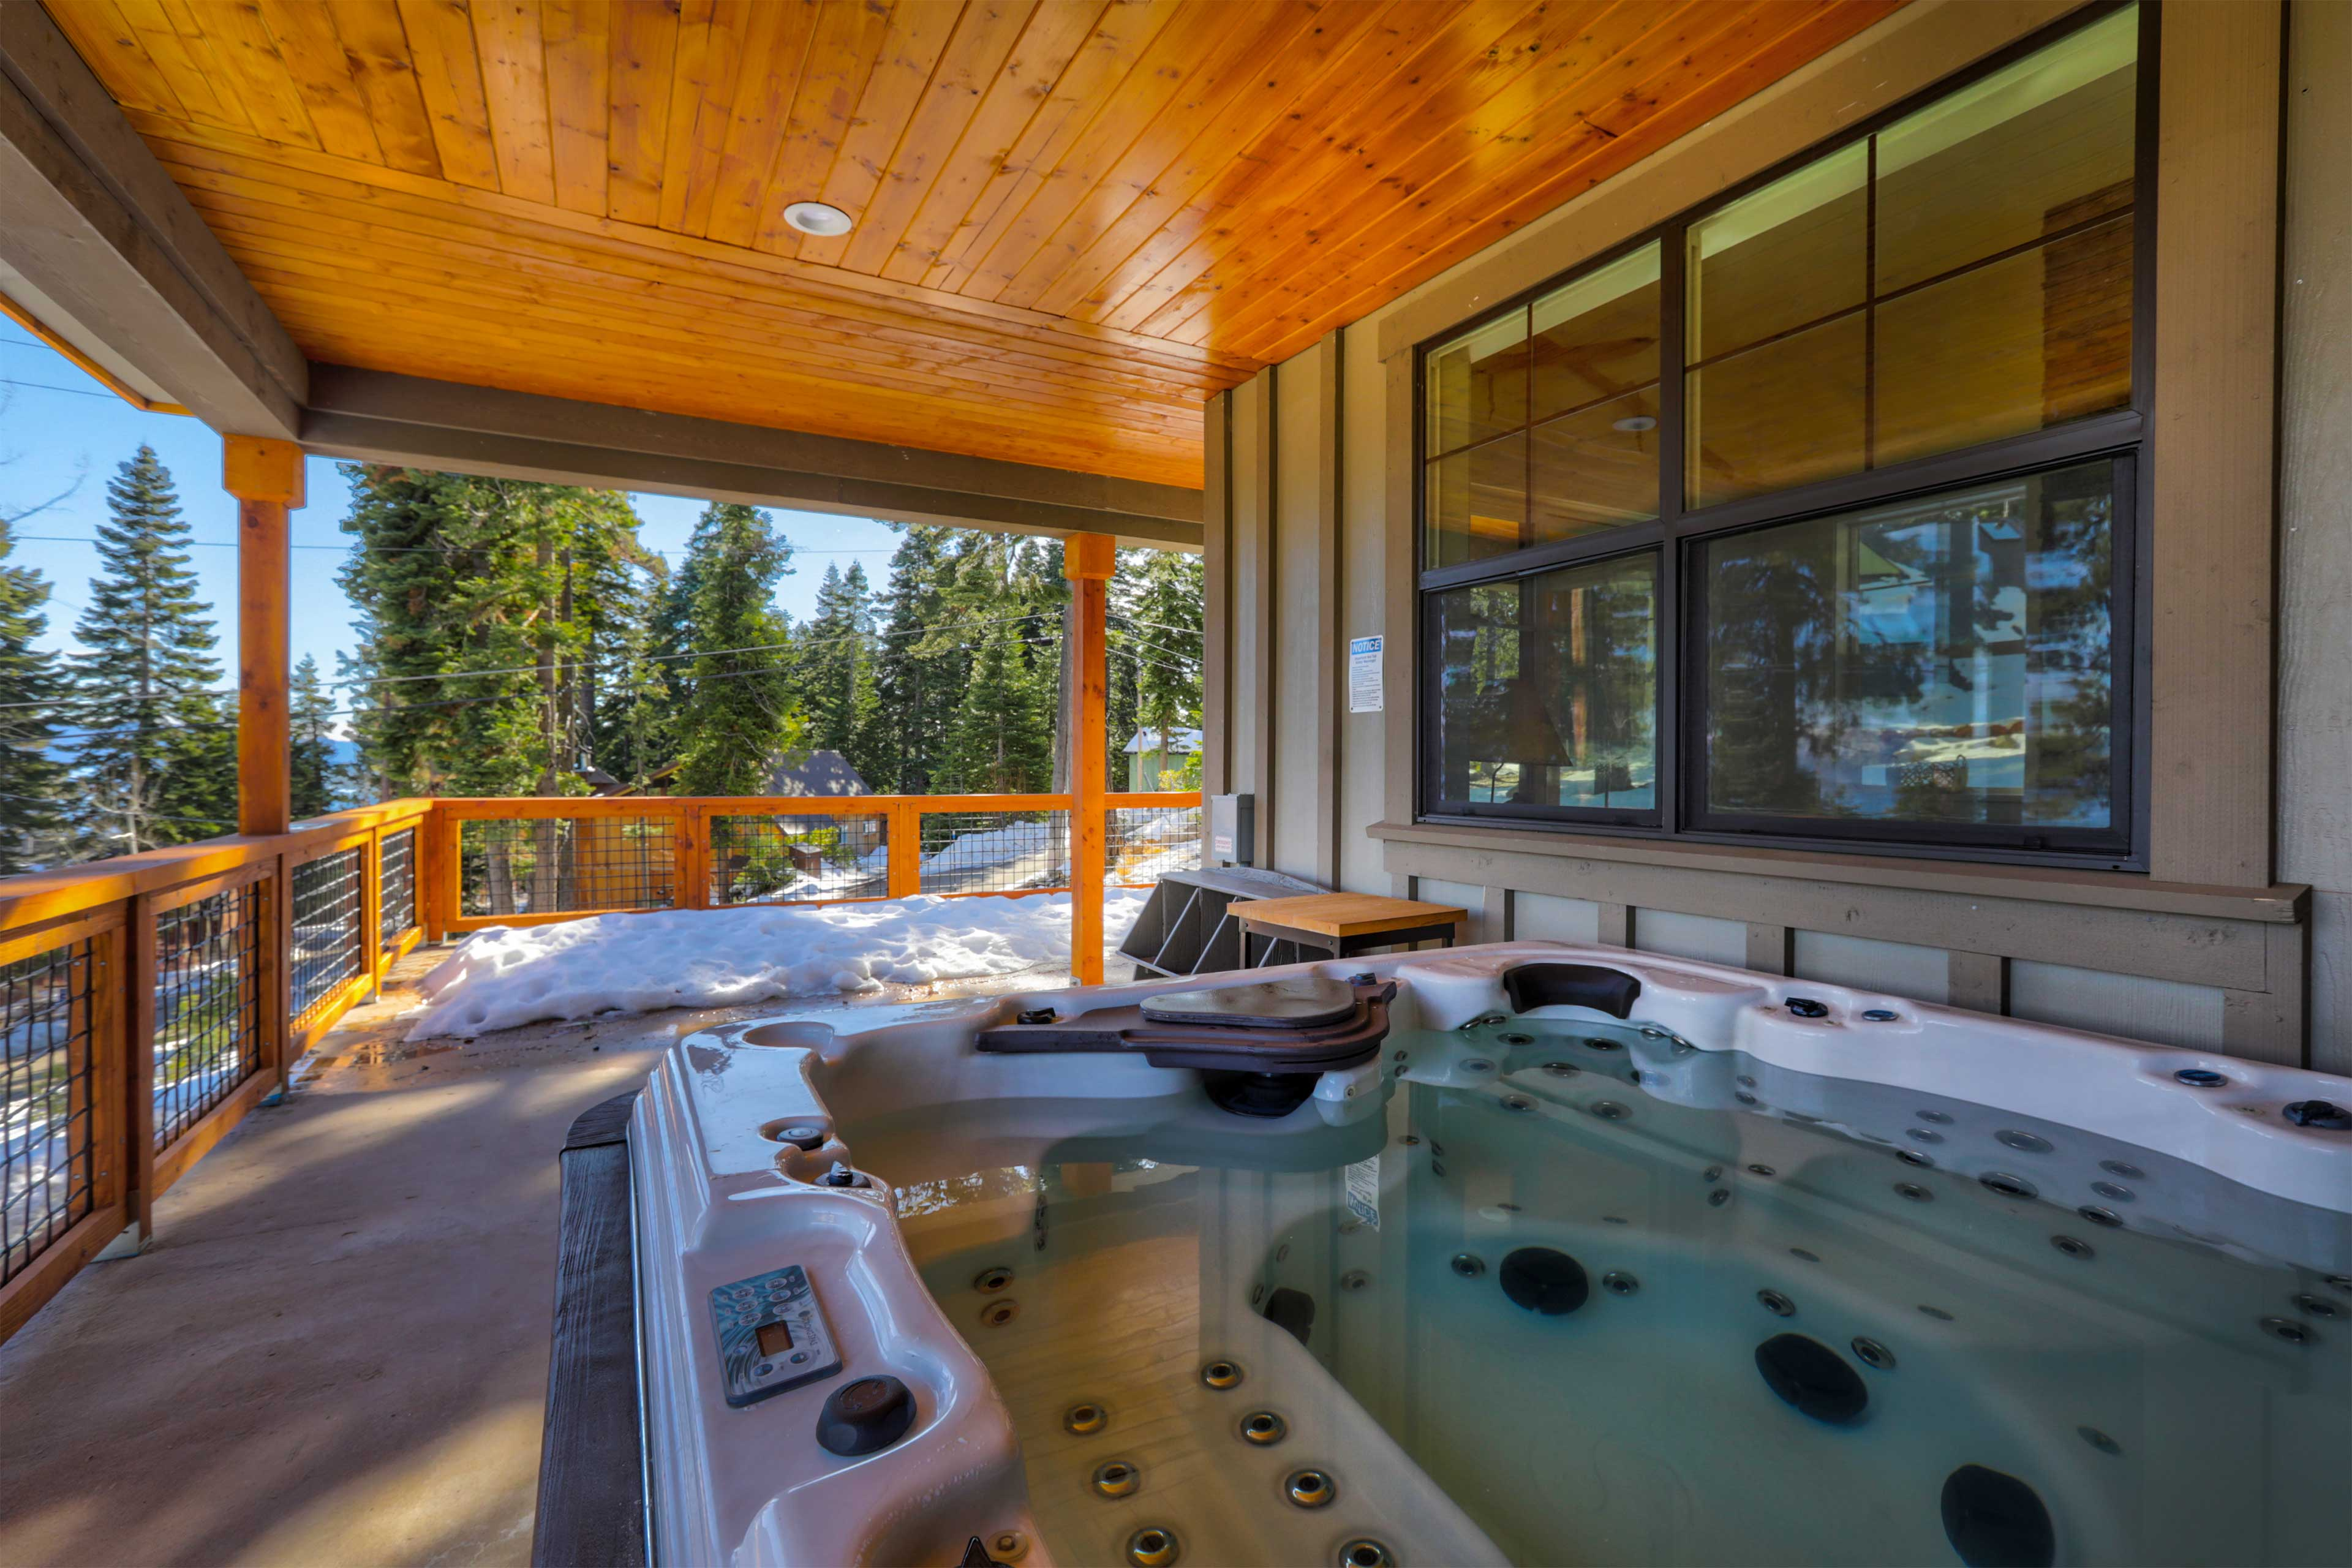 Follow a full day on the slopes with a dip in the hot tub.